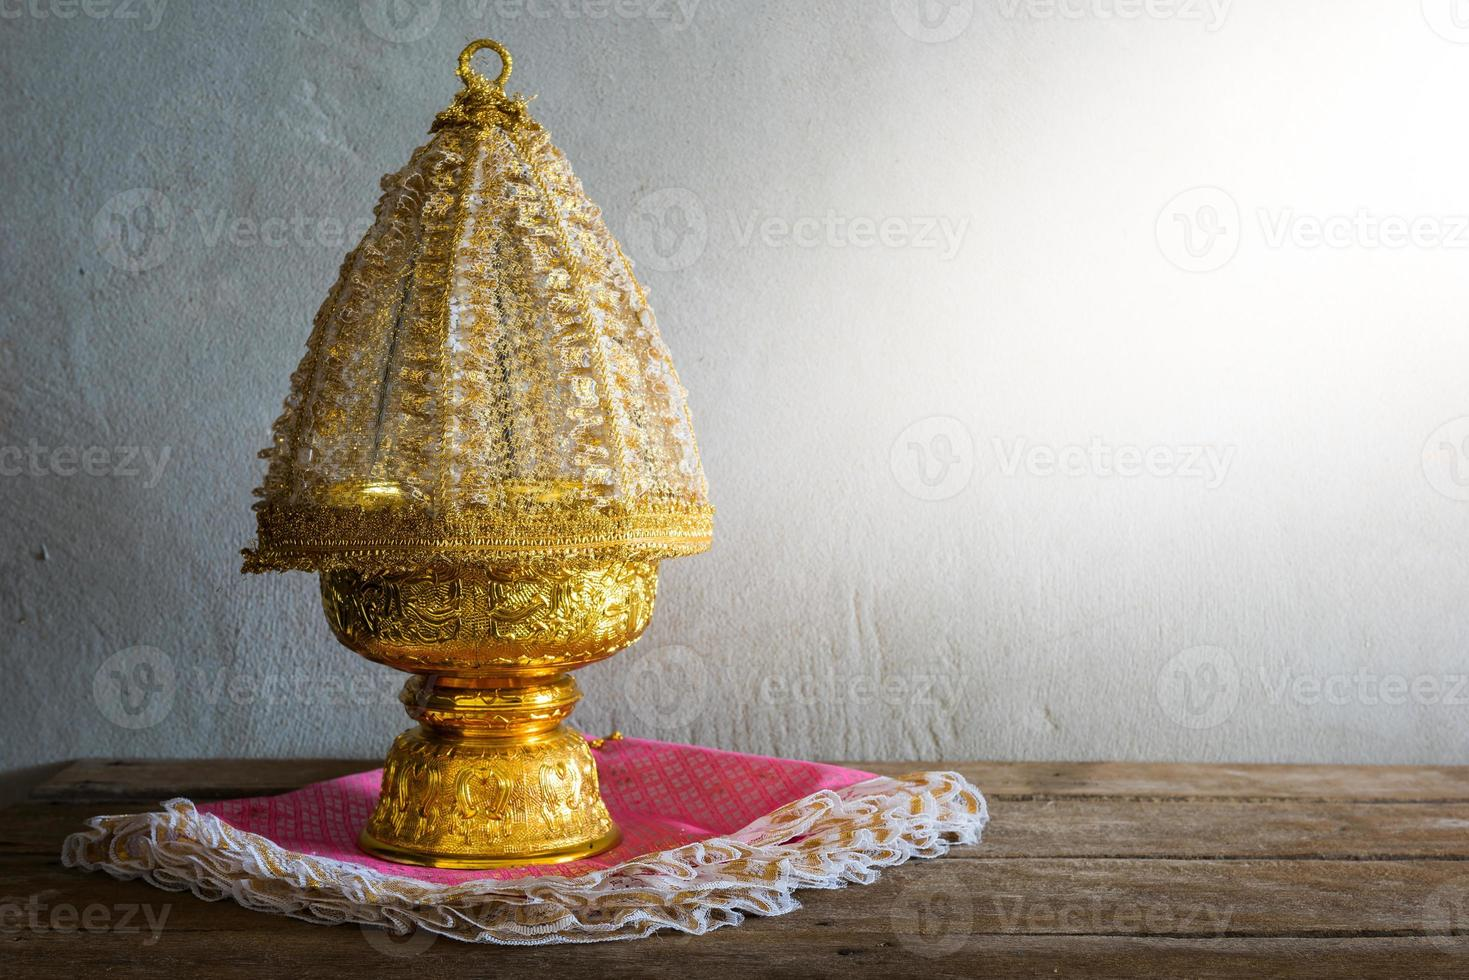 Thailand Gold tray with pedestal photo